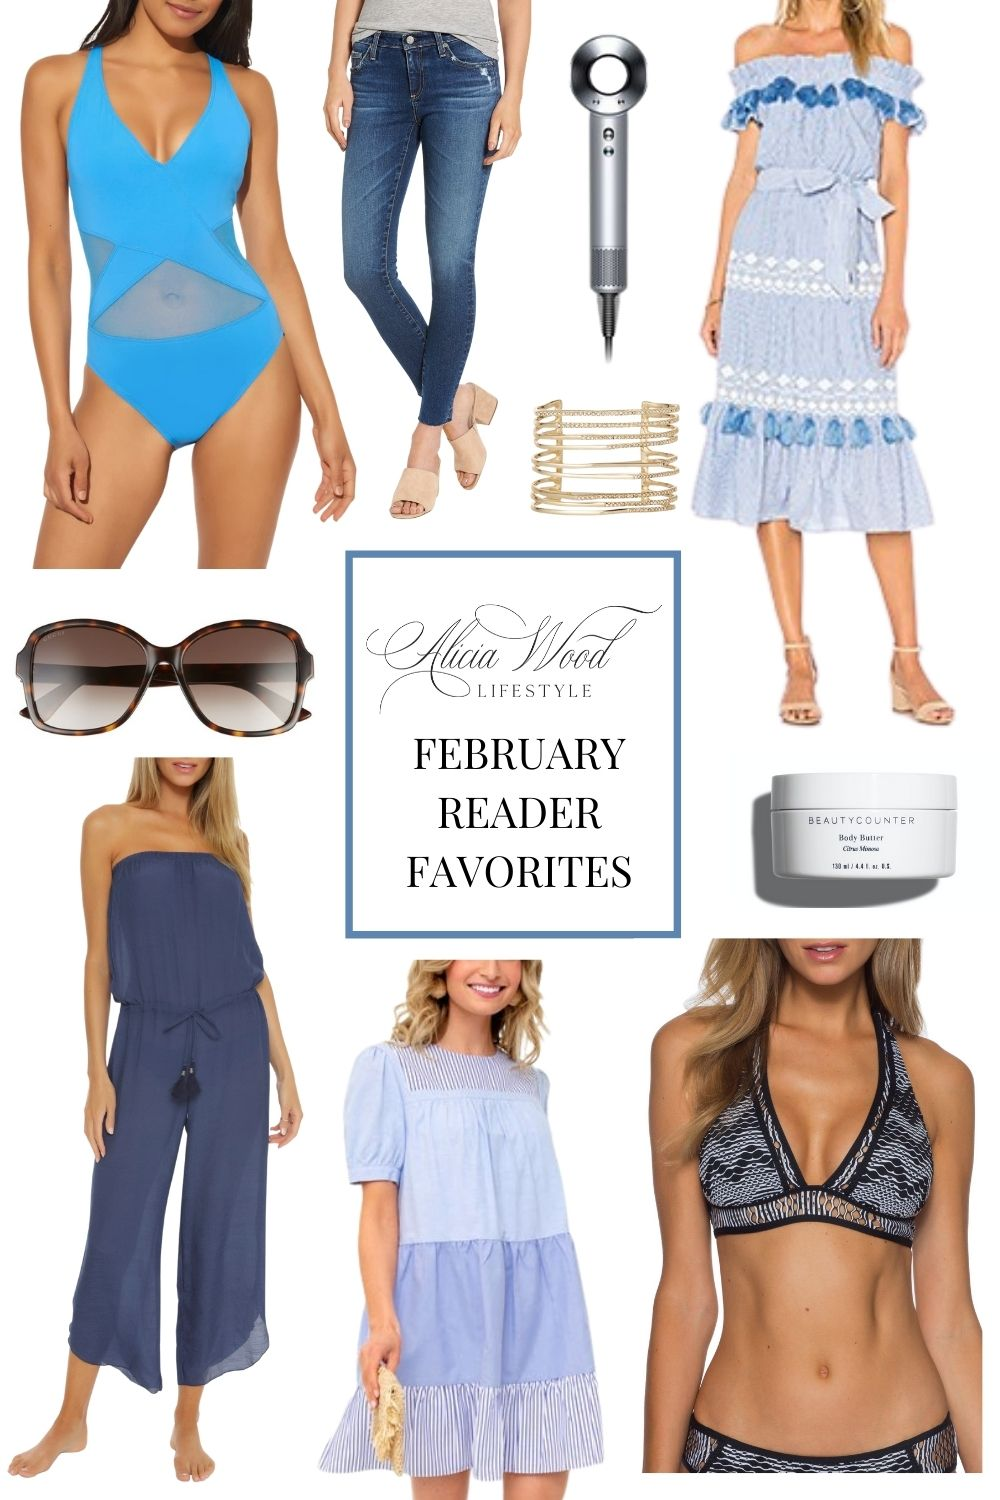 Top 25 February Reader Favorites 2021